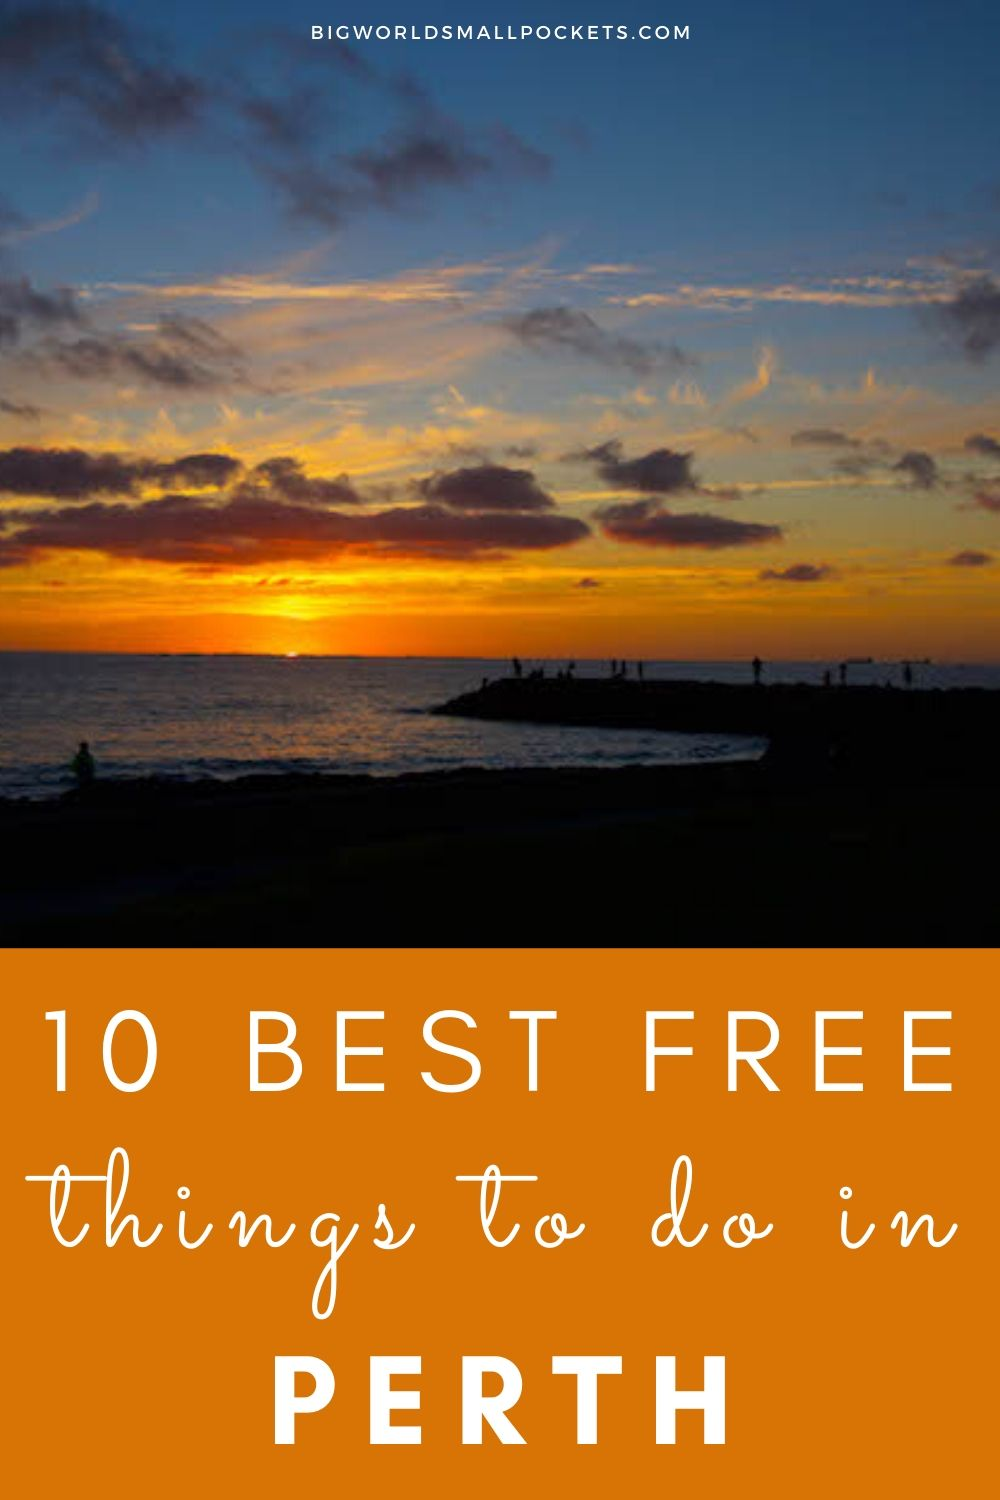 10 Best FREE Things to Do When You Visit Perth, Western Australia